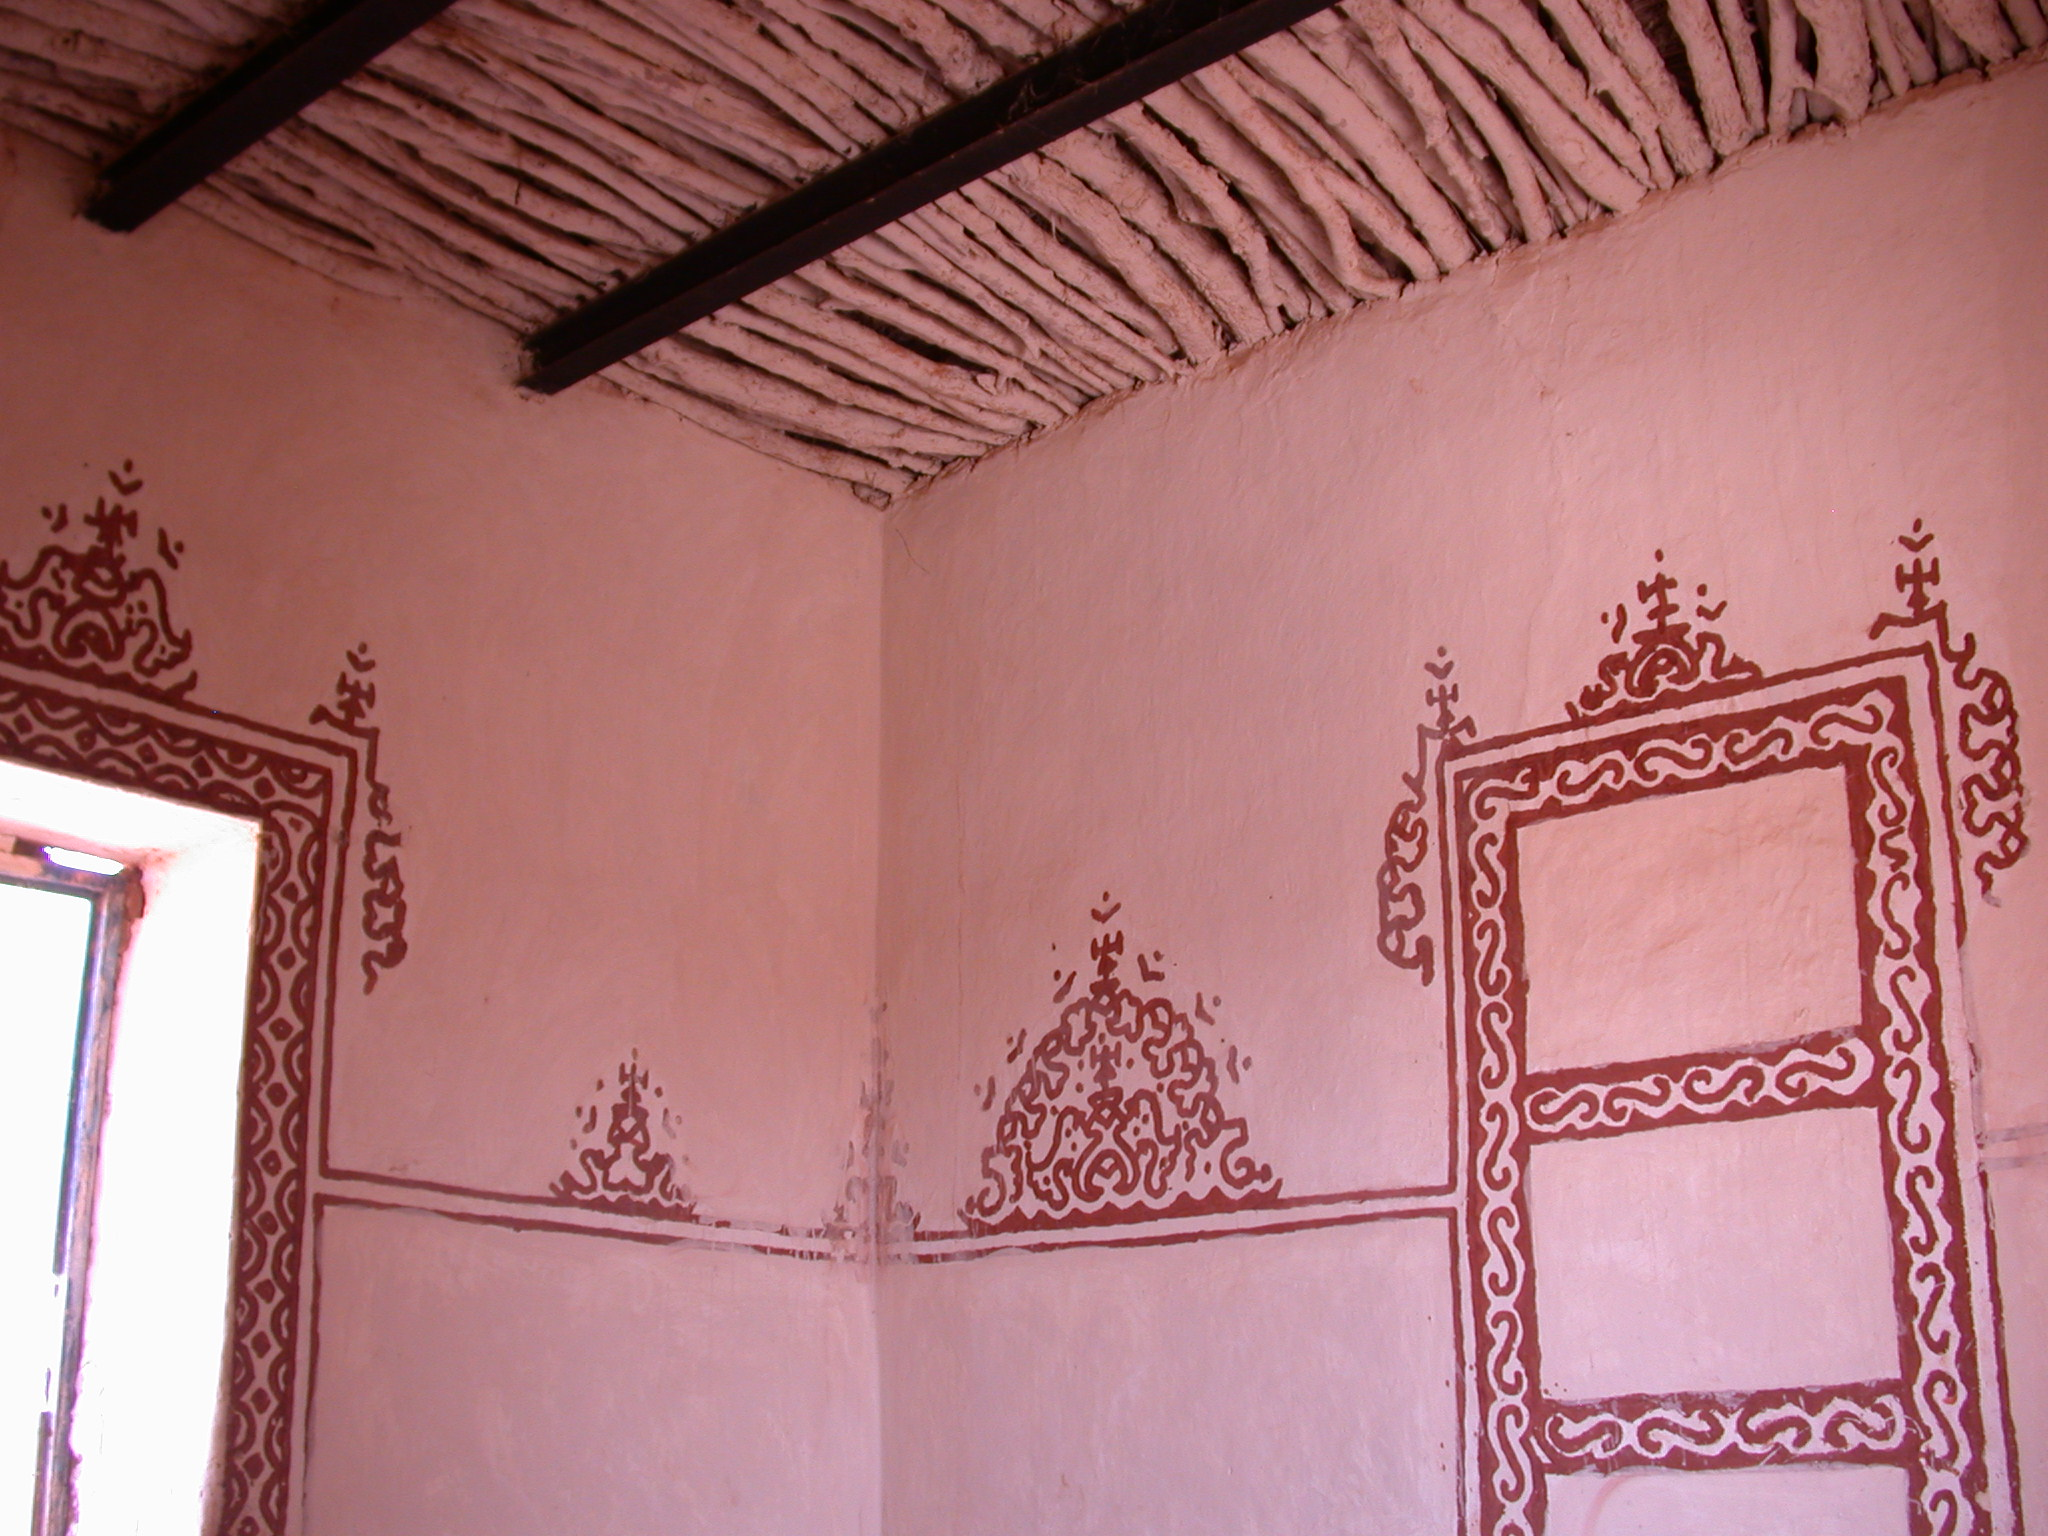 Hotel Room in Ancient City of Oulata, Mauritania